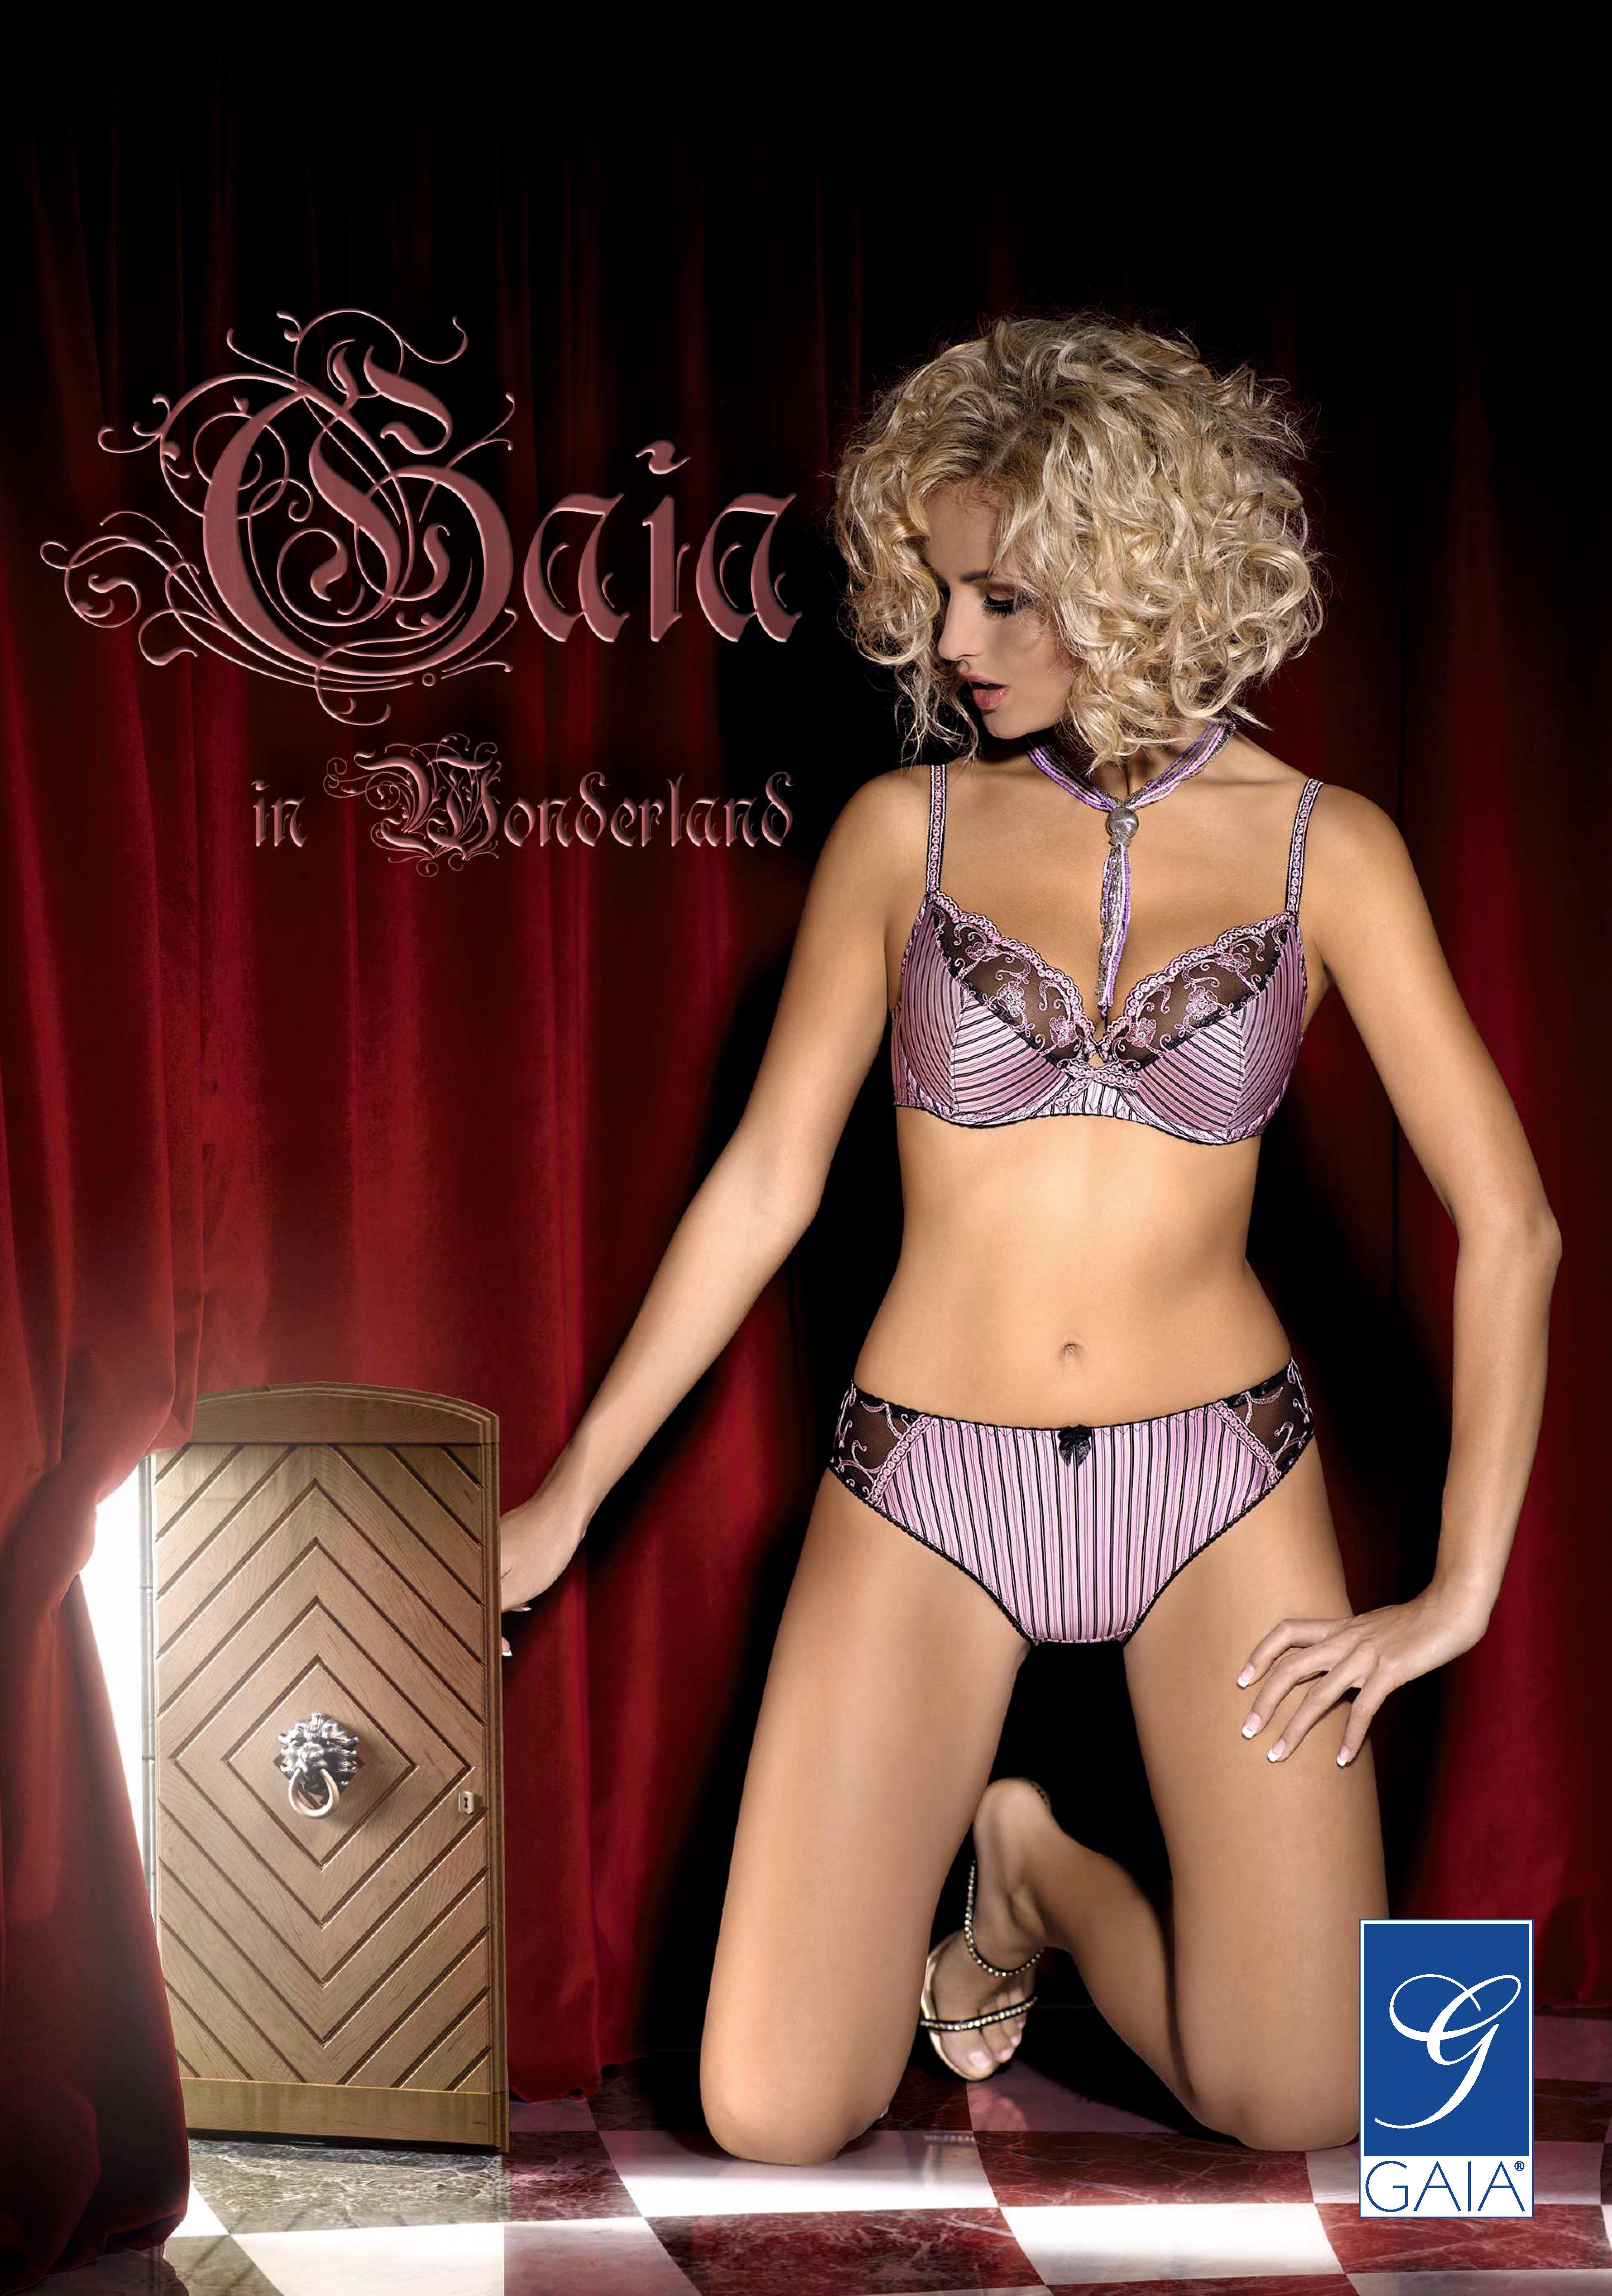 Katalog Gaia – Autumn/Winter 2010